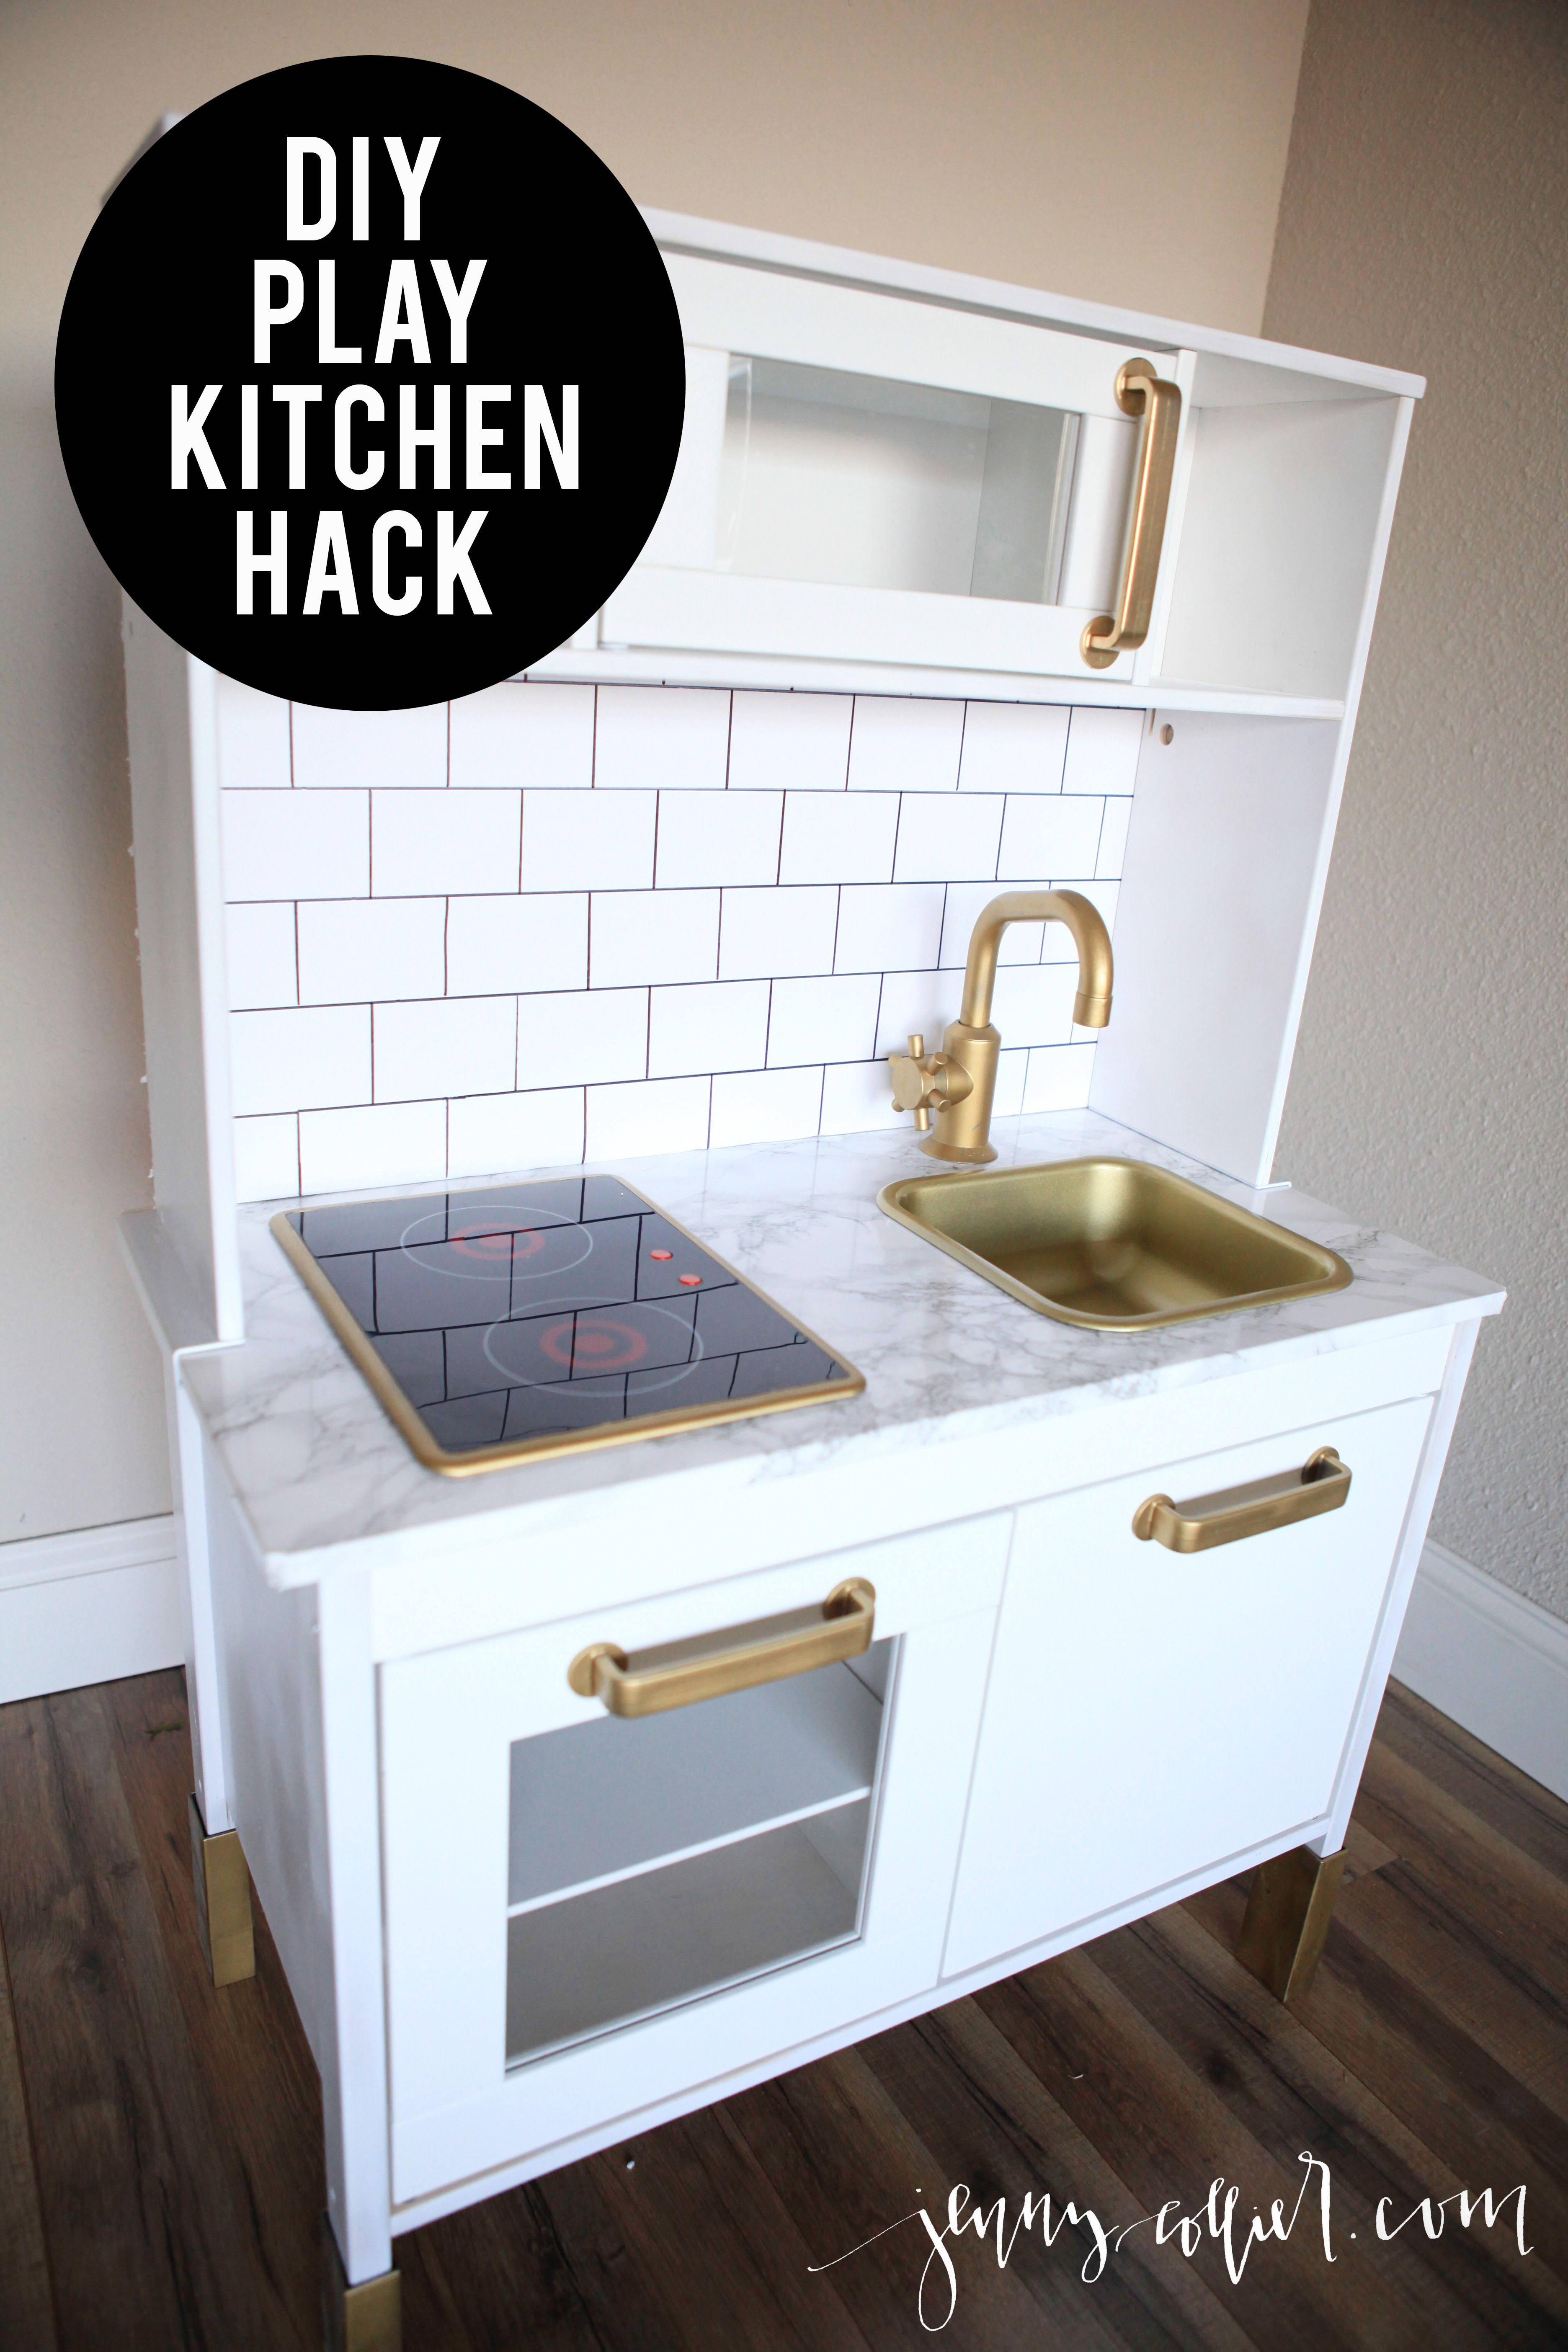 Pinterest Cabinets Kitchen Diy Play Kitchen Hack For Makaila Pinterest Diy Play